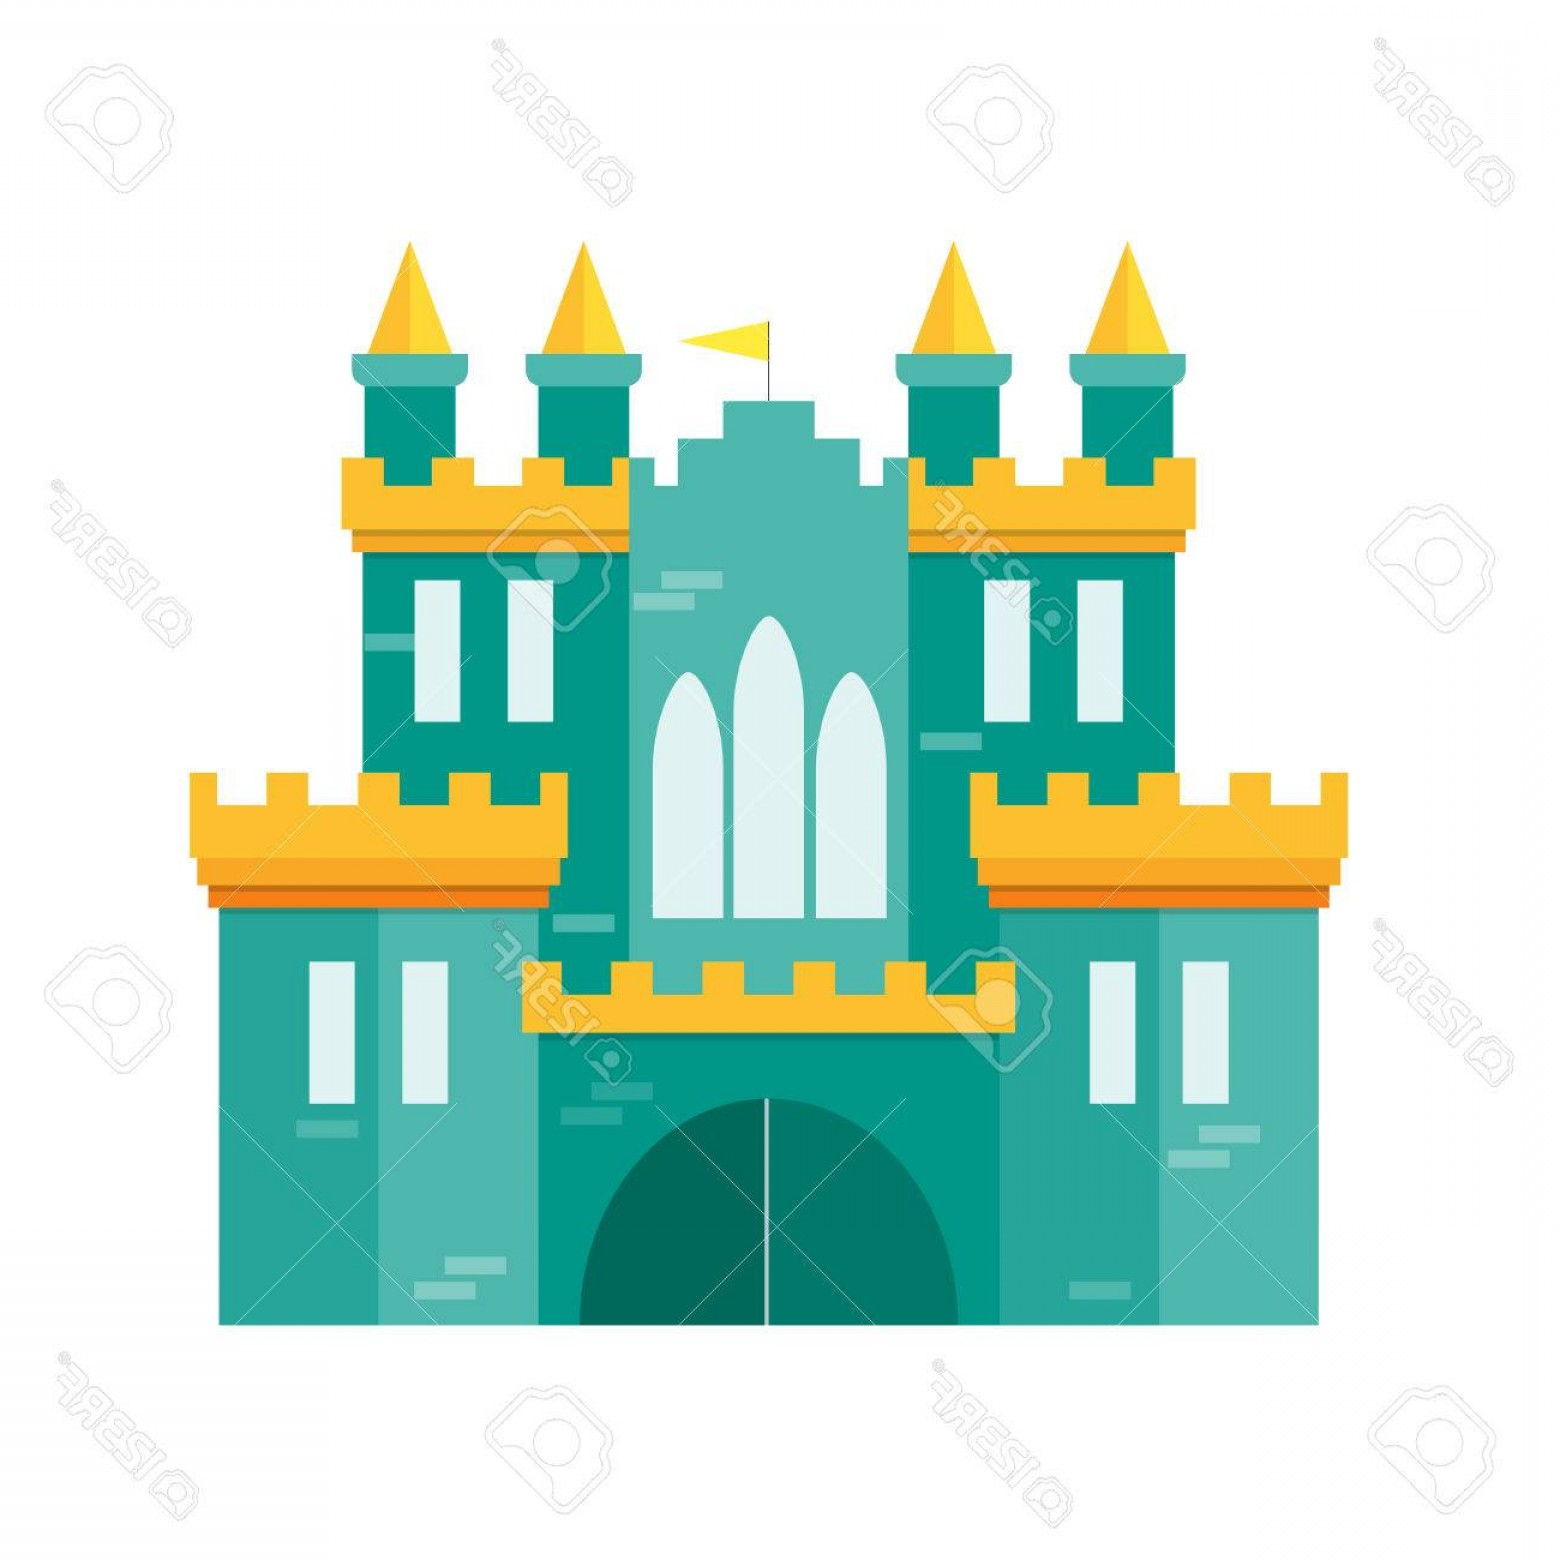 Ford Vector Art: Photostock Vector Castle Princess Flat Design Style Medieval Fortified Ford For Kingdom Vector Illustration